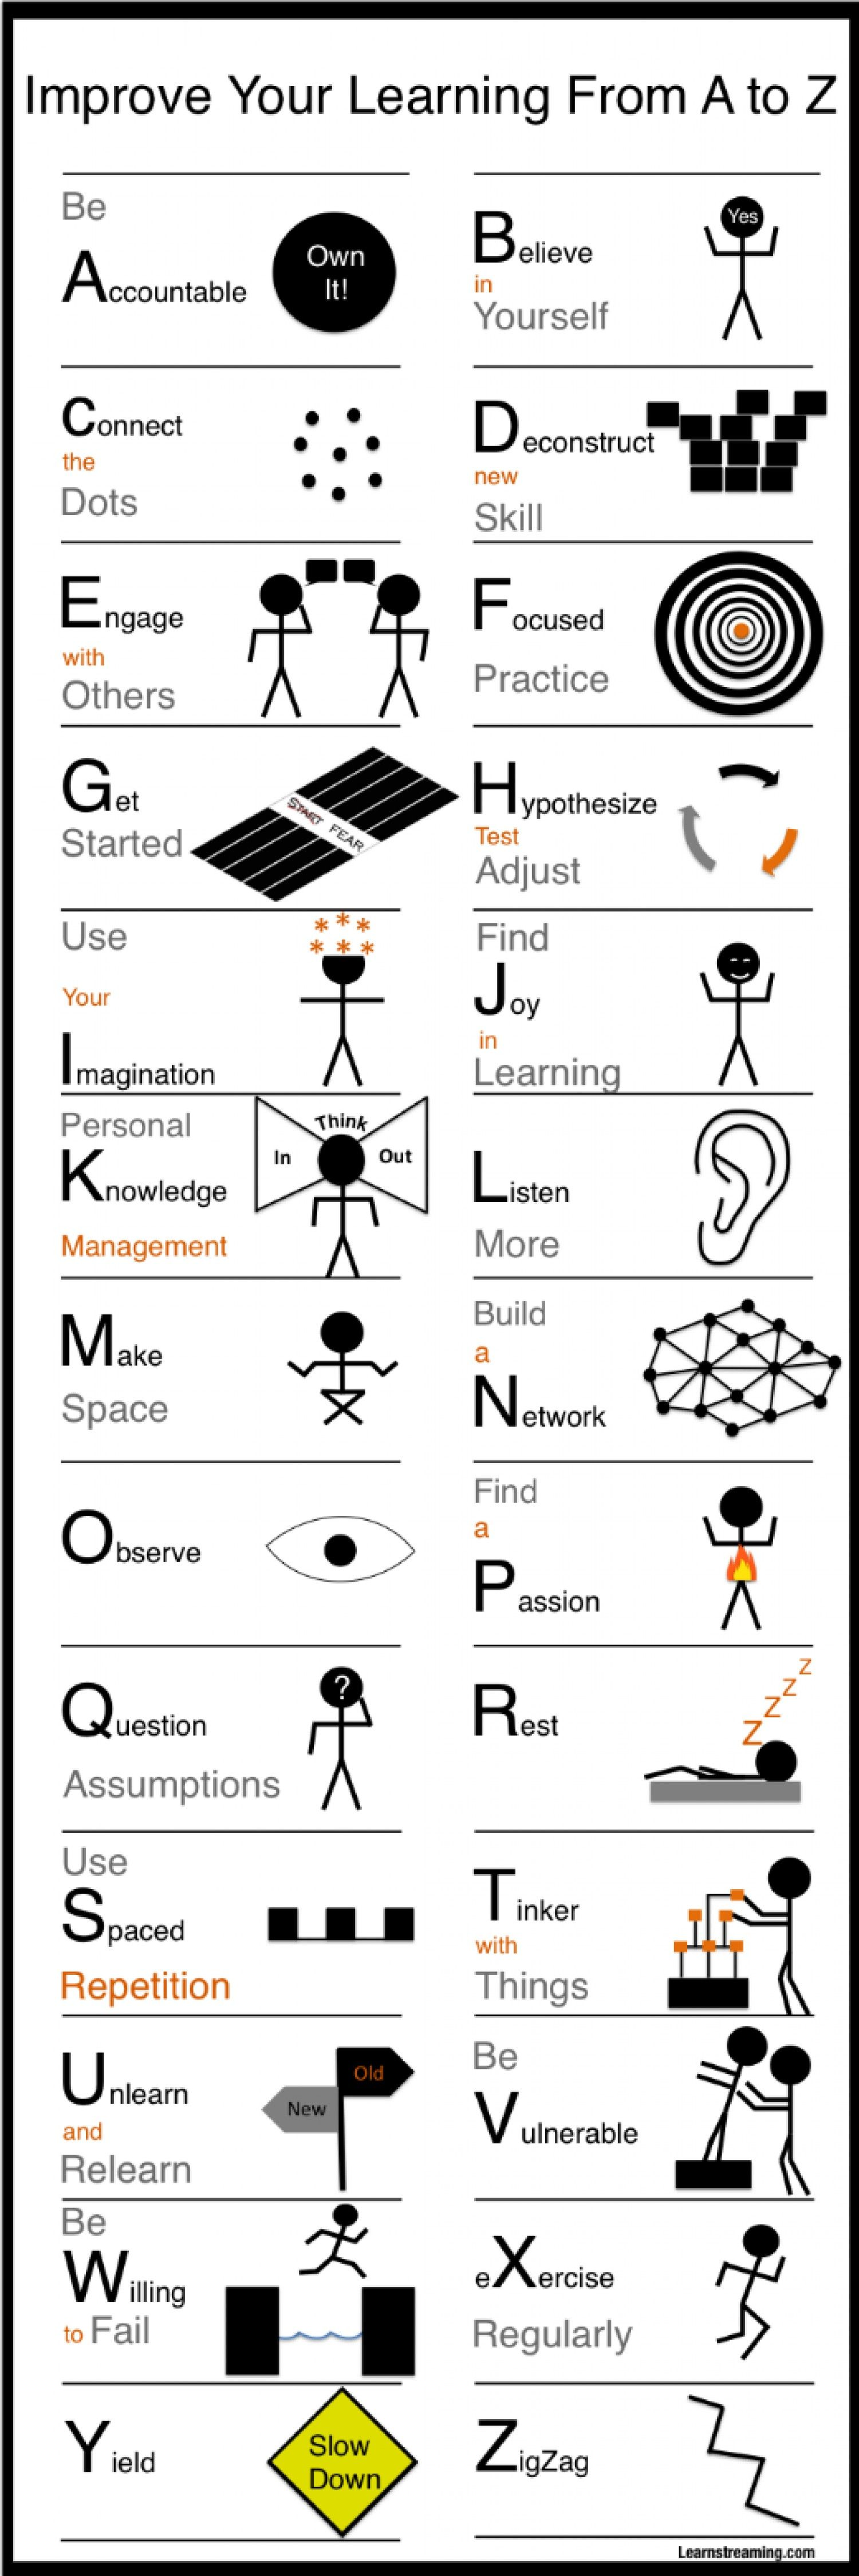 Improve Your Learning From A to Z Infographic   Info. Boards   Pinterest